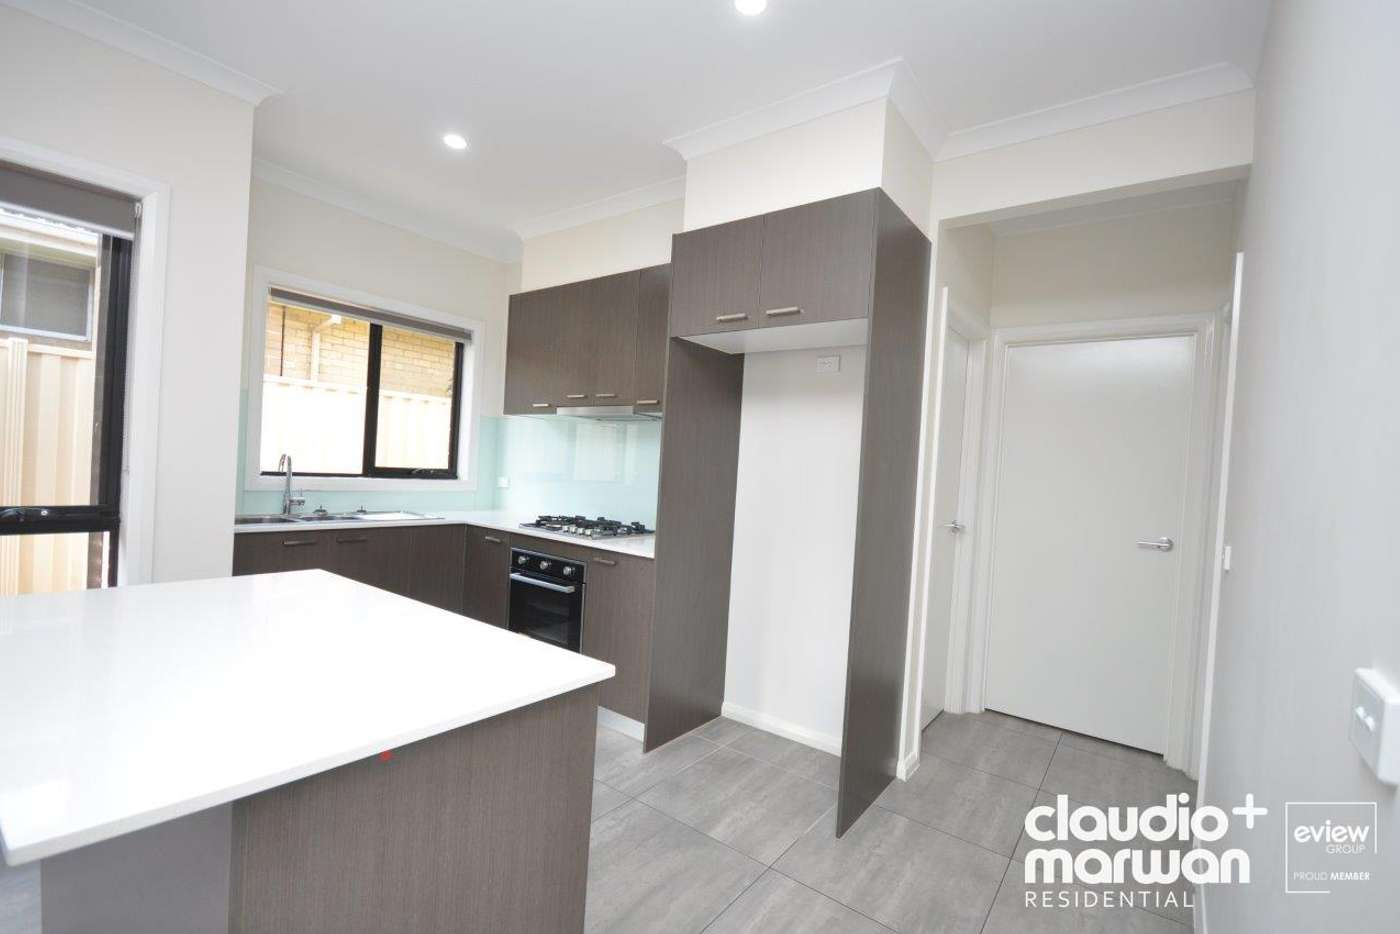 Seventh view of Homely unit listing, 3/74 Melbourne Avenue, Glenroy VIC 3046